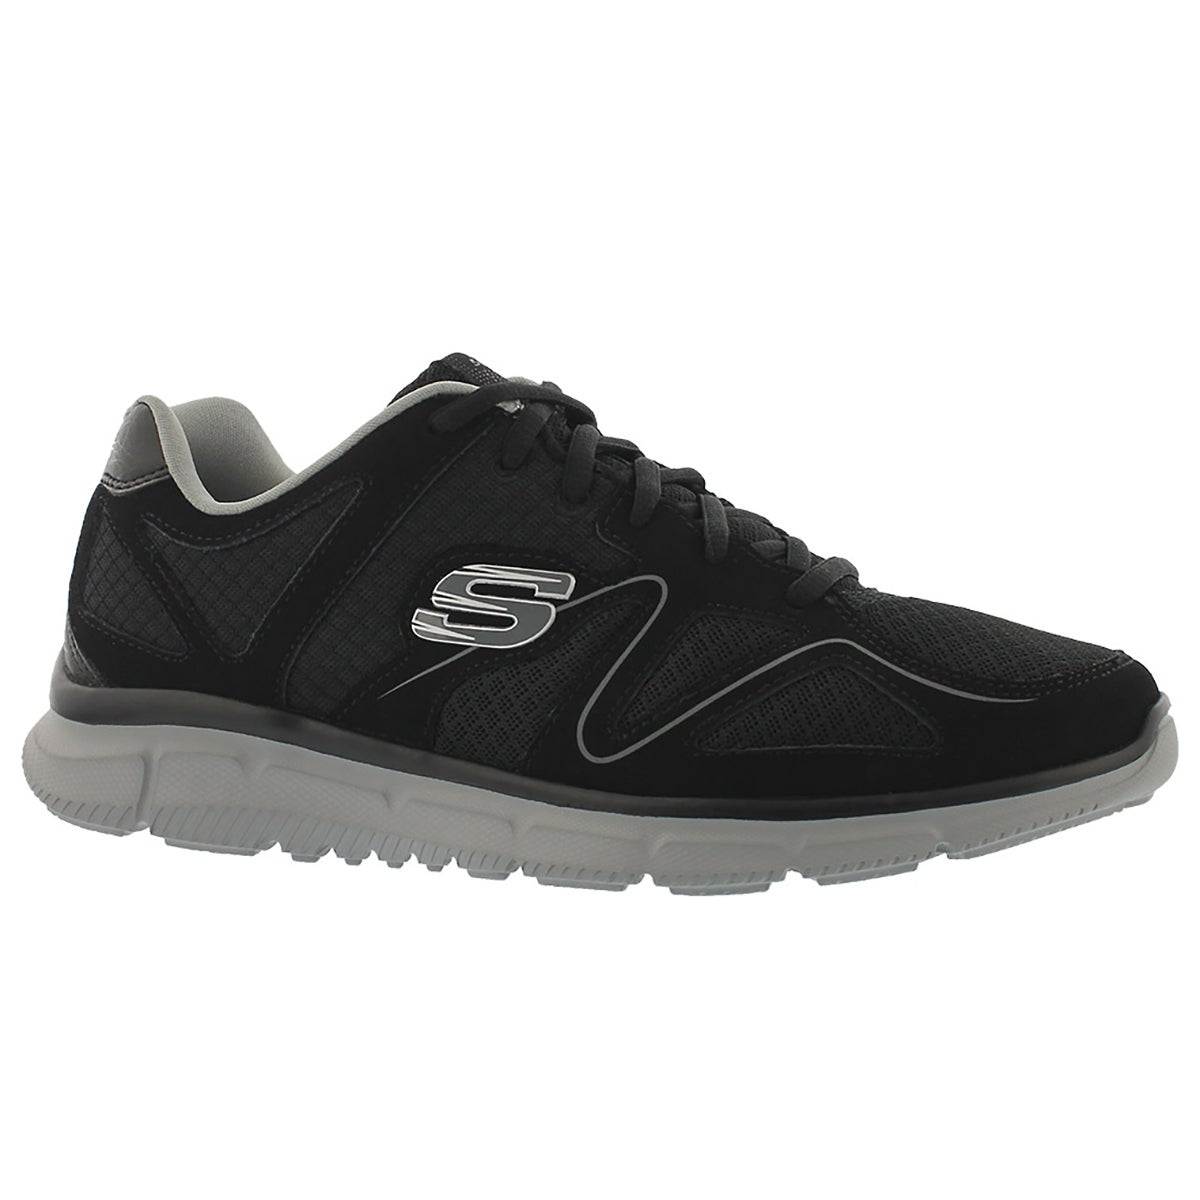 Mens VERSE- FLASH POINT blk/gry running shoe